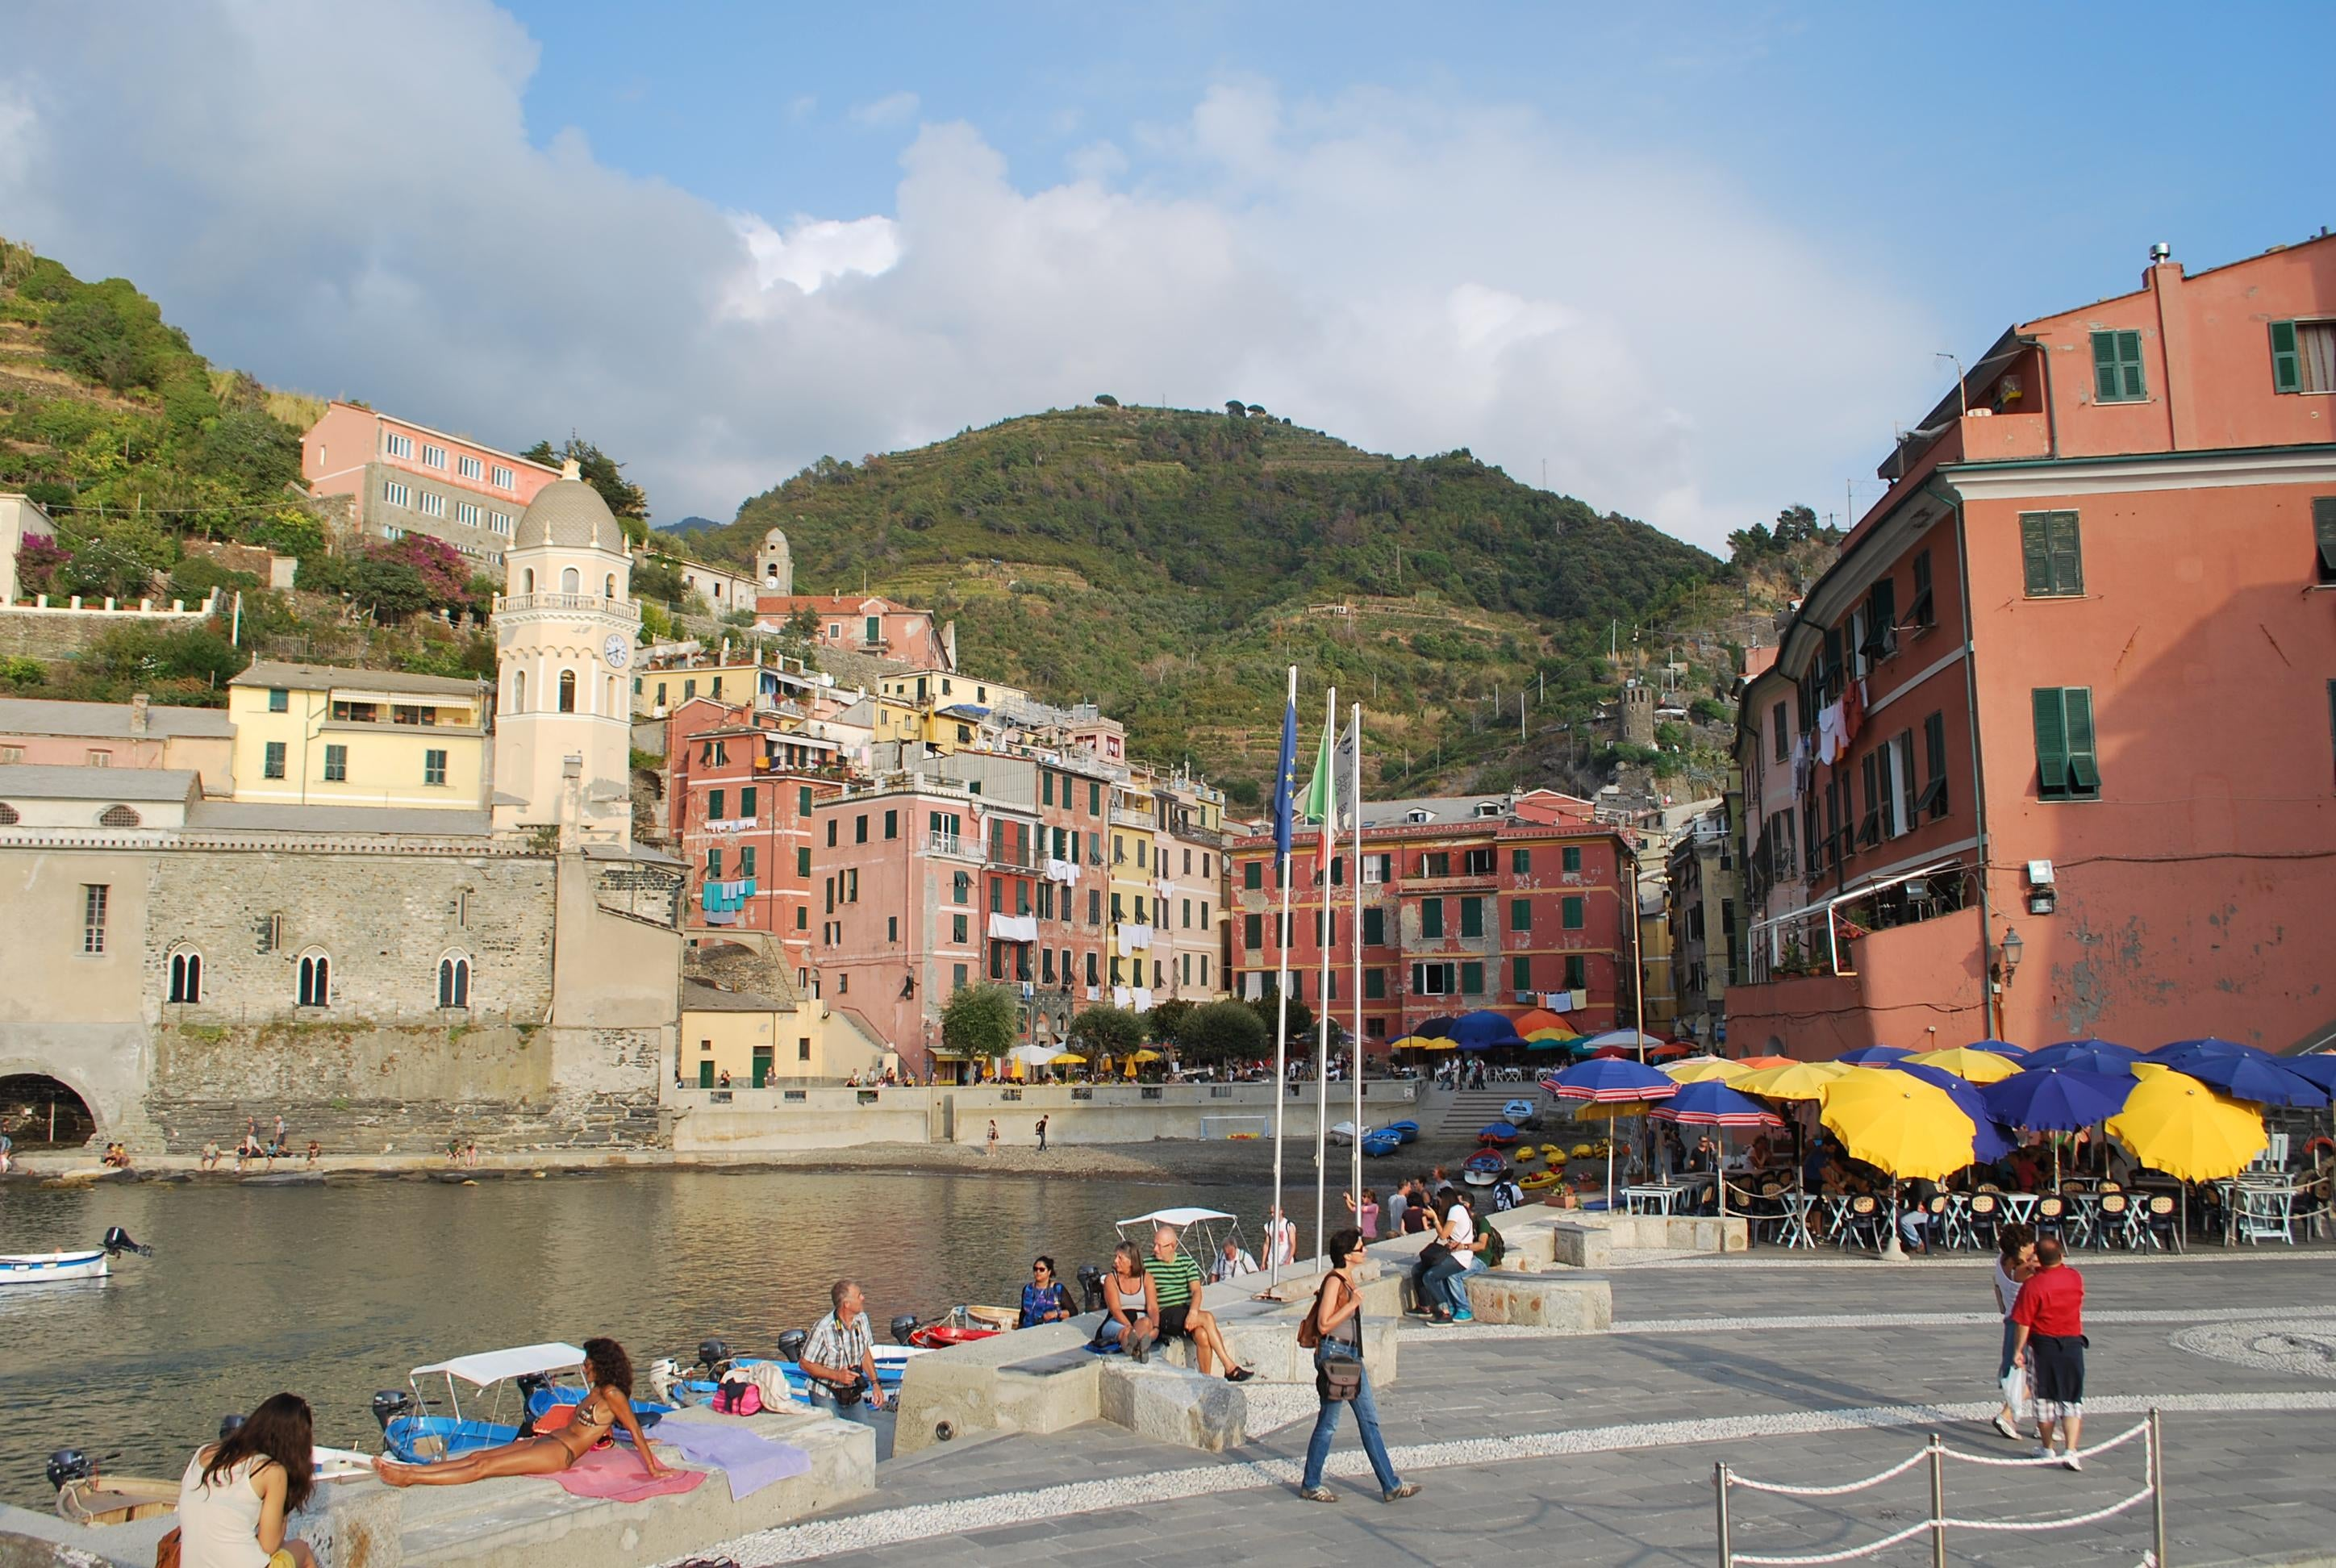 Plaza en Vernazza